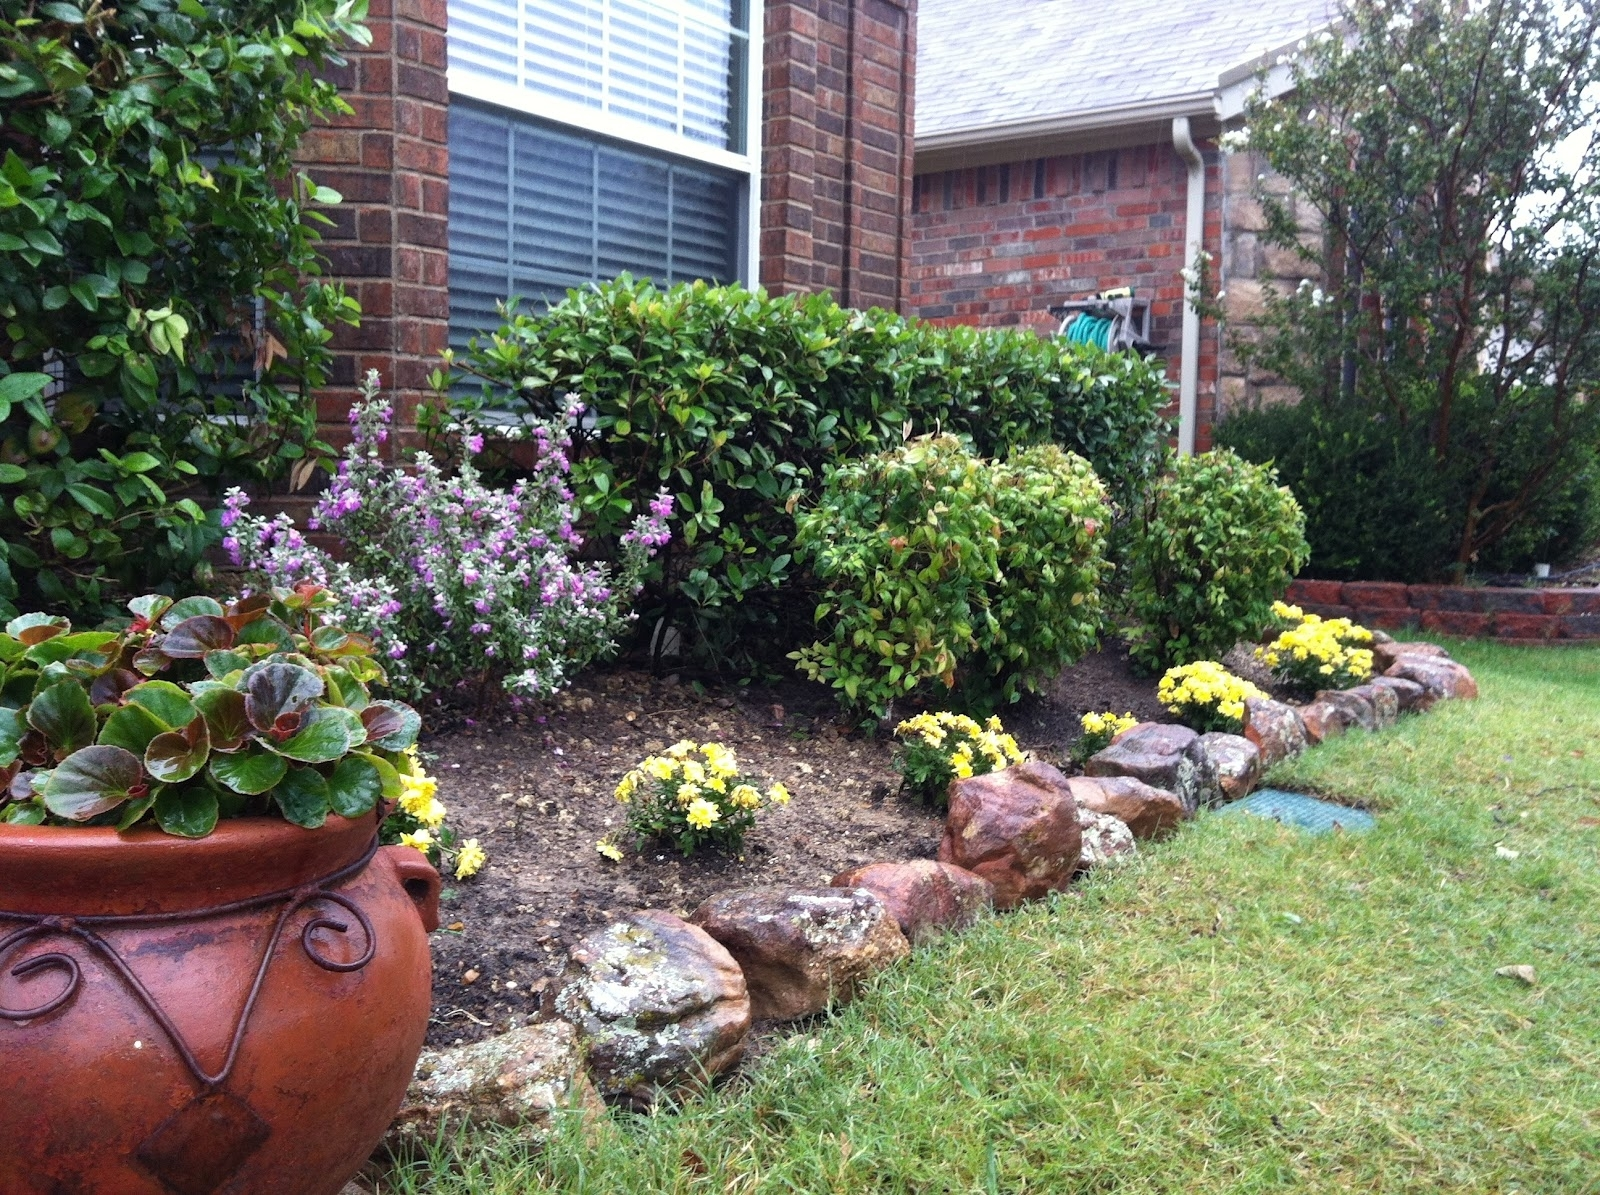 Image of: Landscaping Ideas For Front Yard With Rocks Bathroom Design 2017 For Front Yard Landscaping With Rocks Create Front Yard Landscaping With Rocks